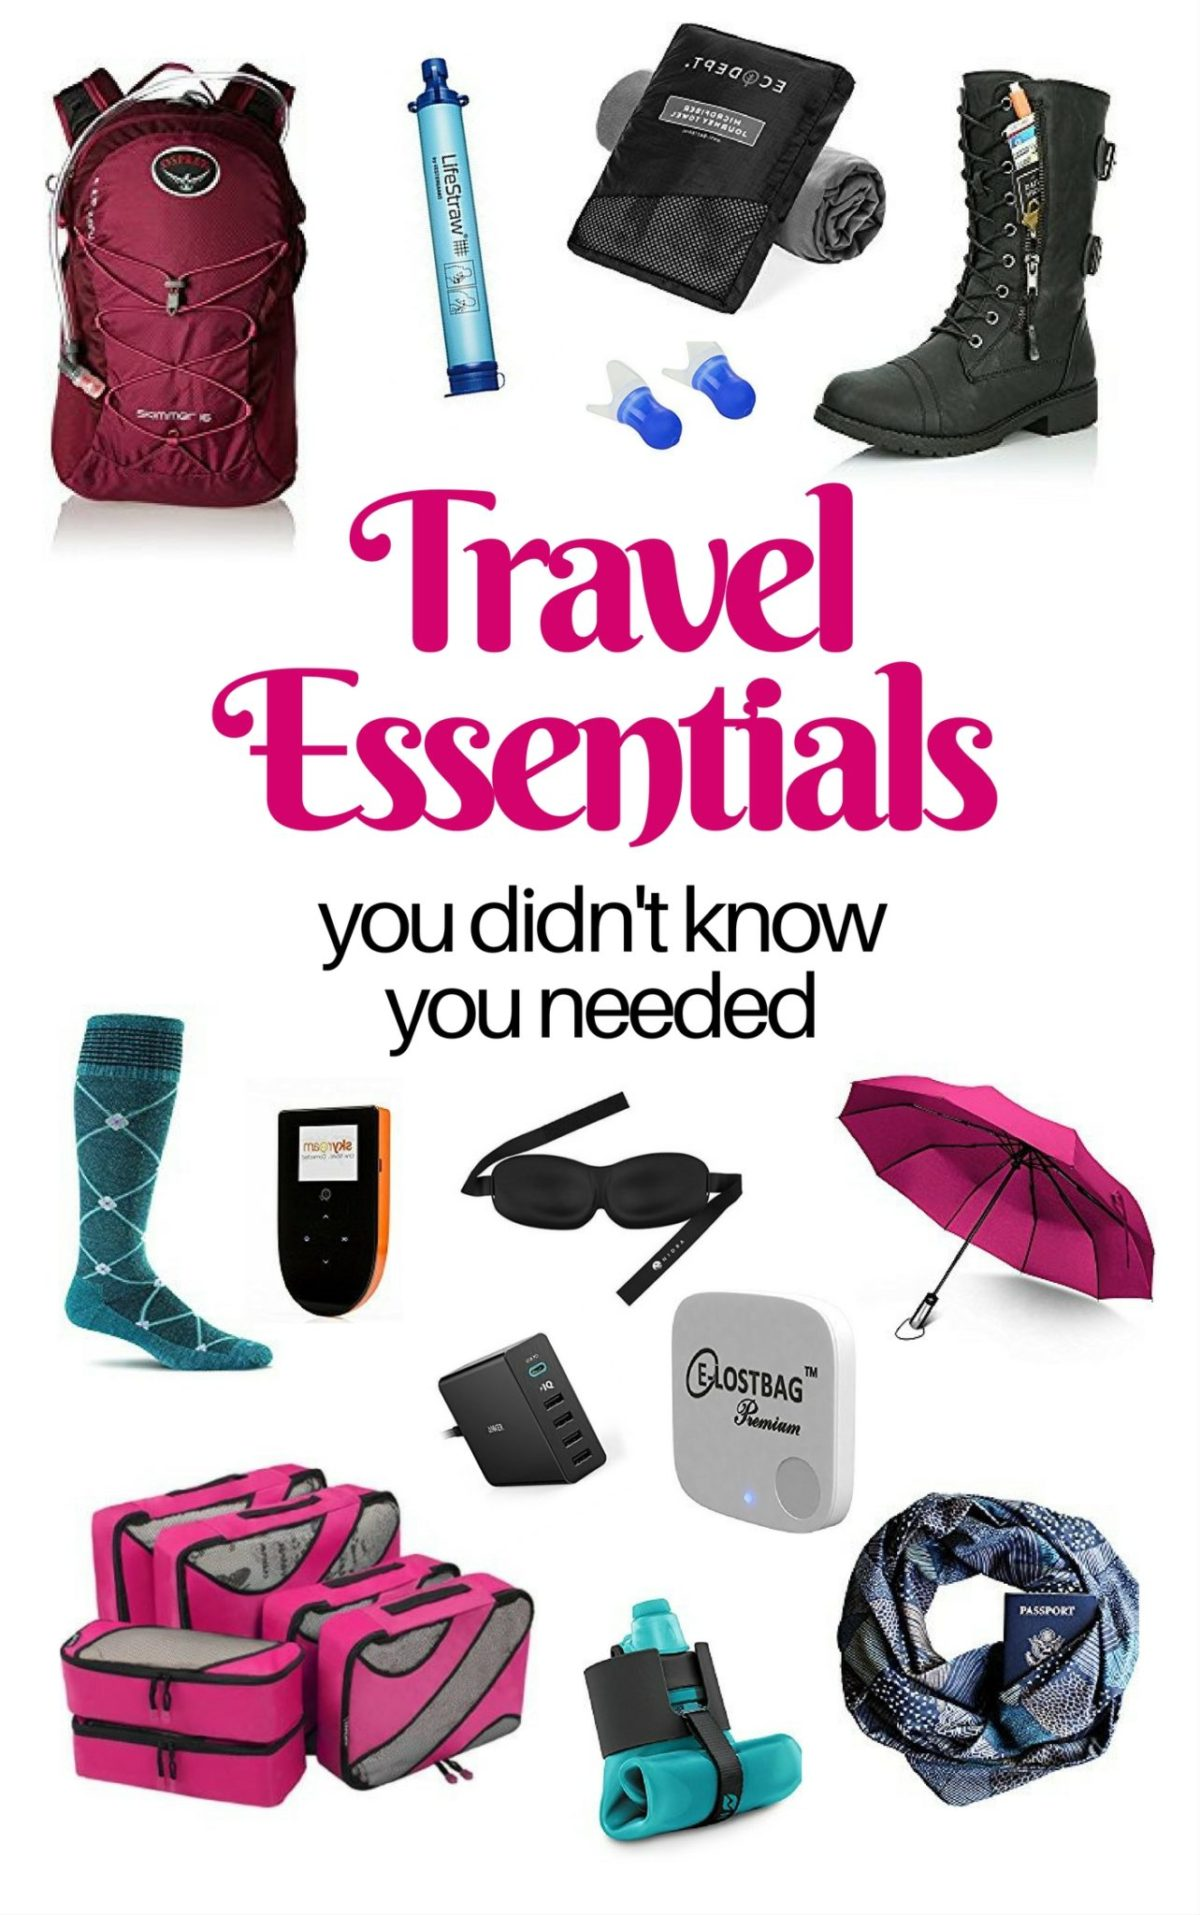 Travel Essentials You Didn't Know You Needed